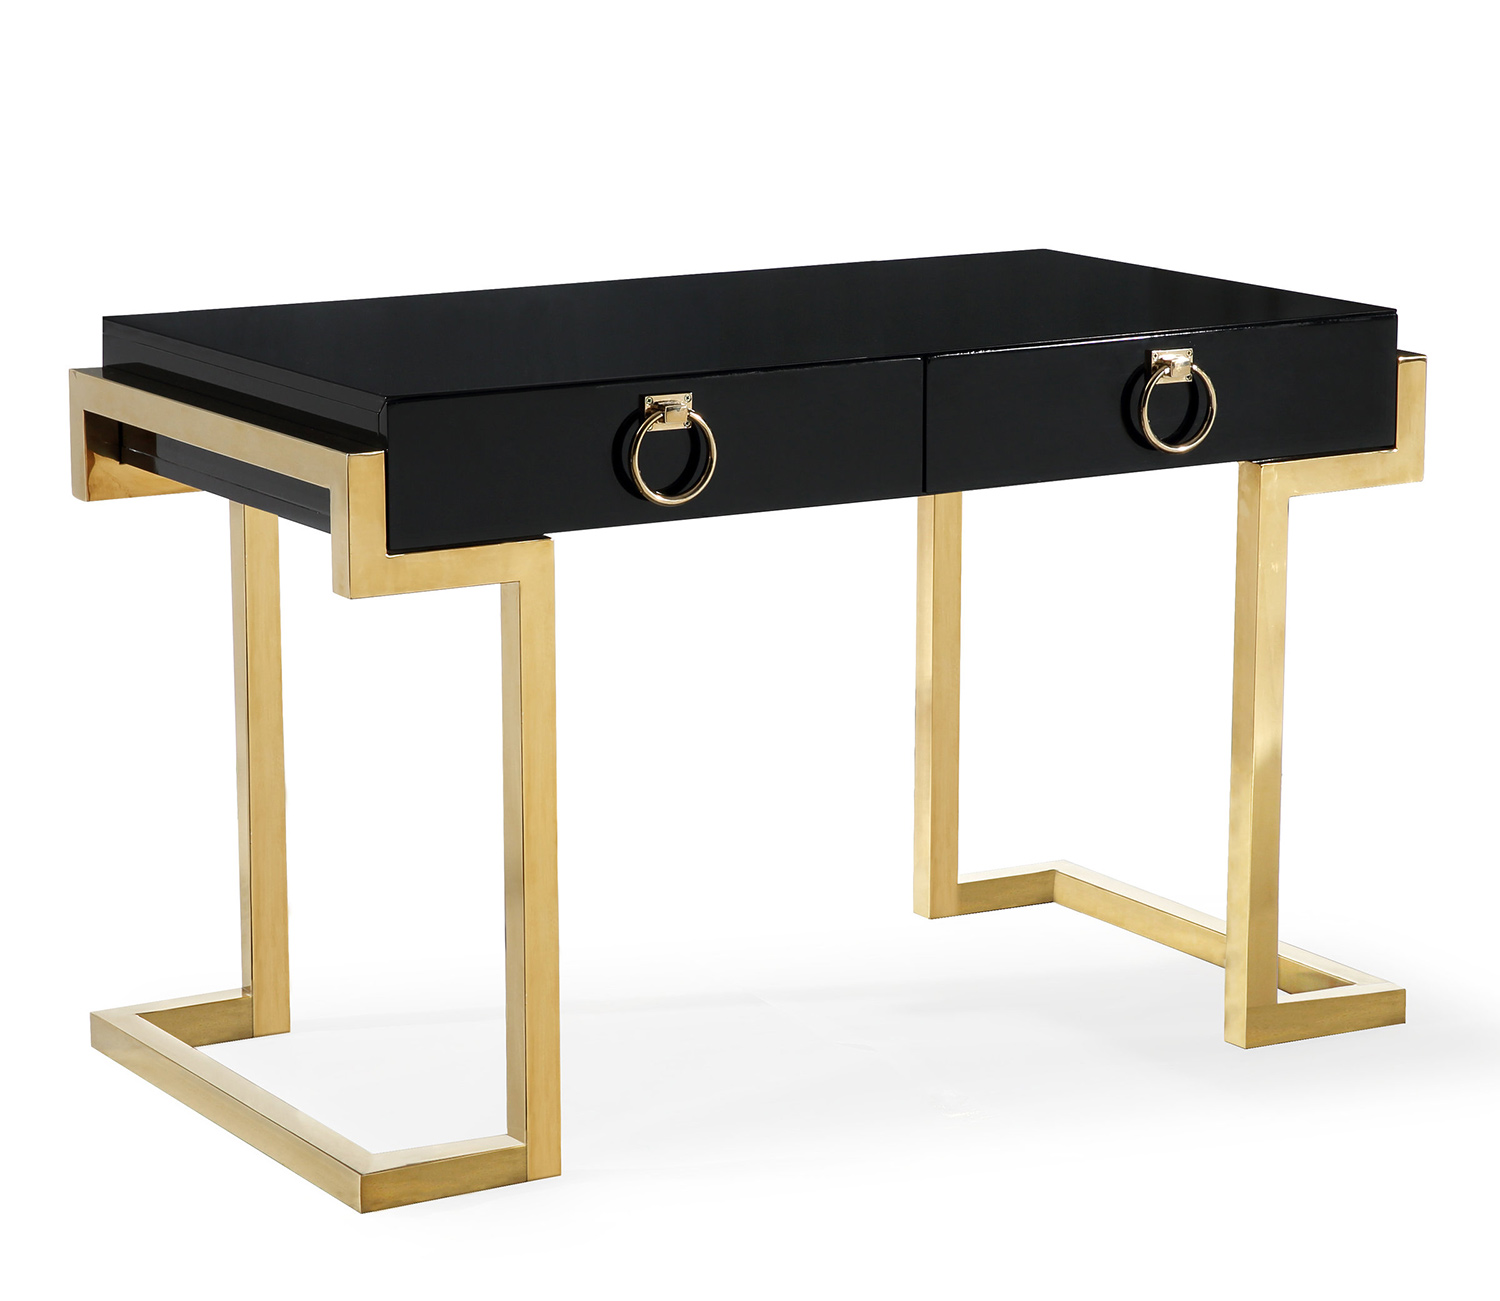 TOV Furniture Majesty Desk - Black/Gold